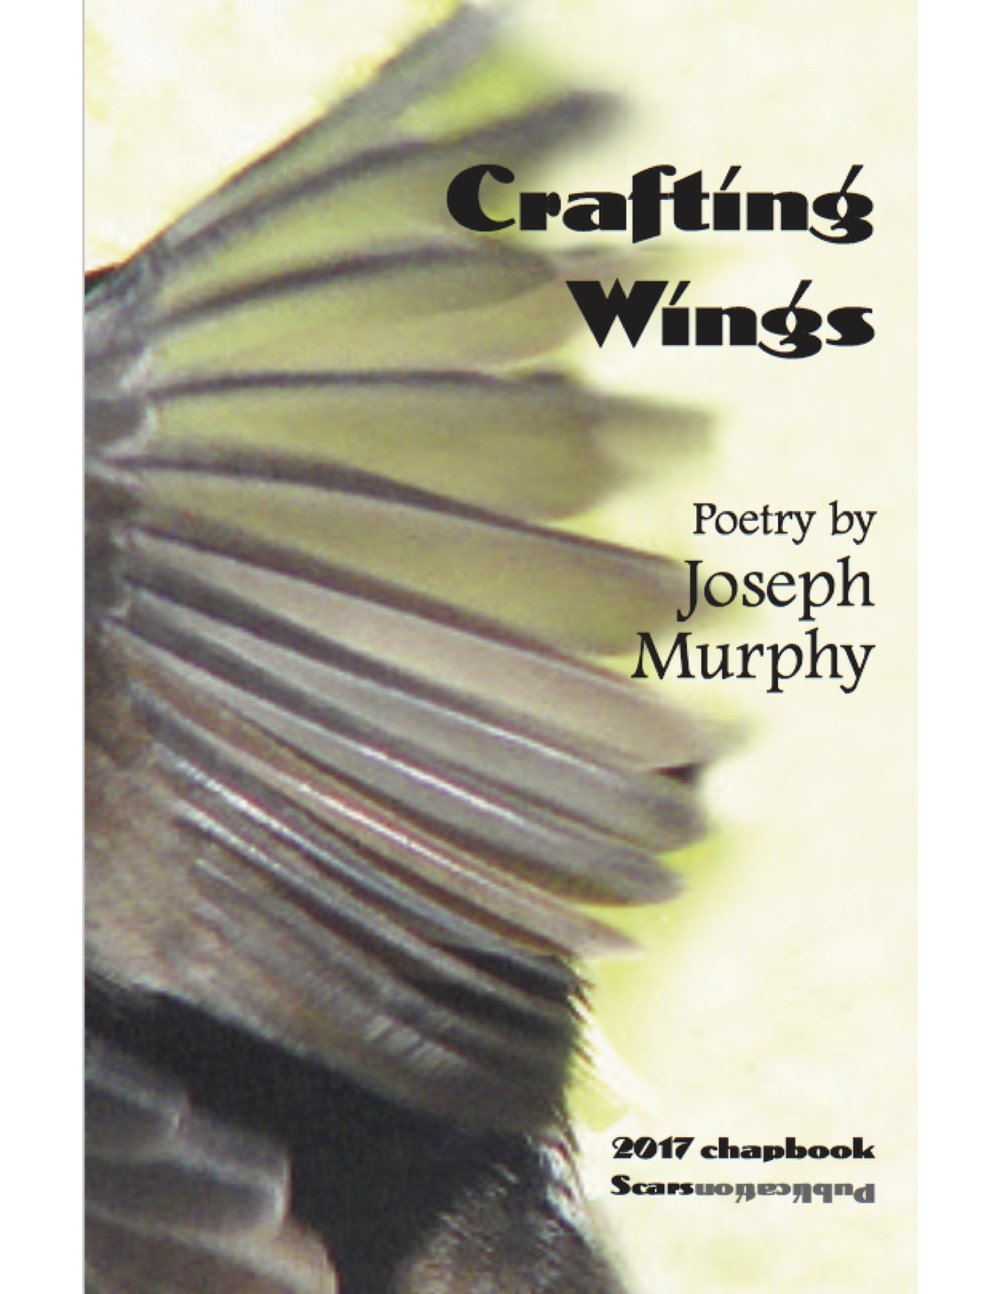 Crafting Wings Cover JPG.jpg